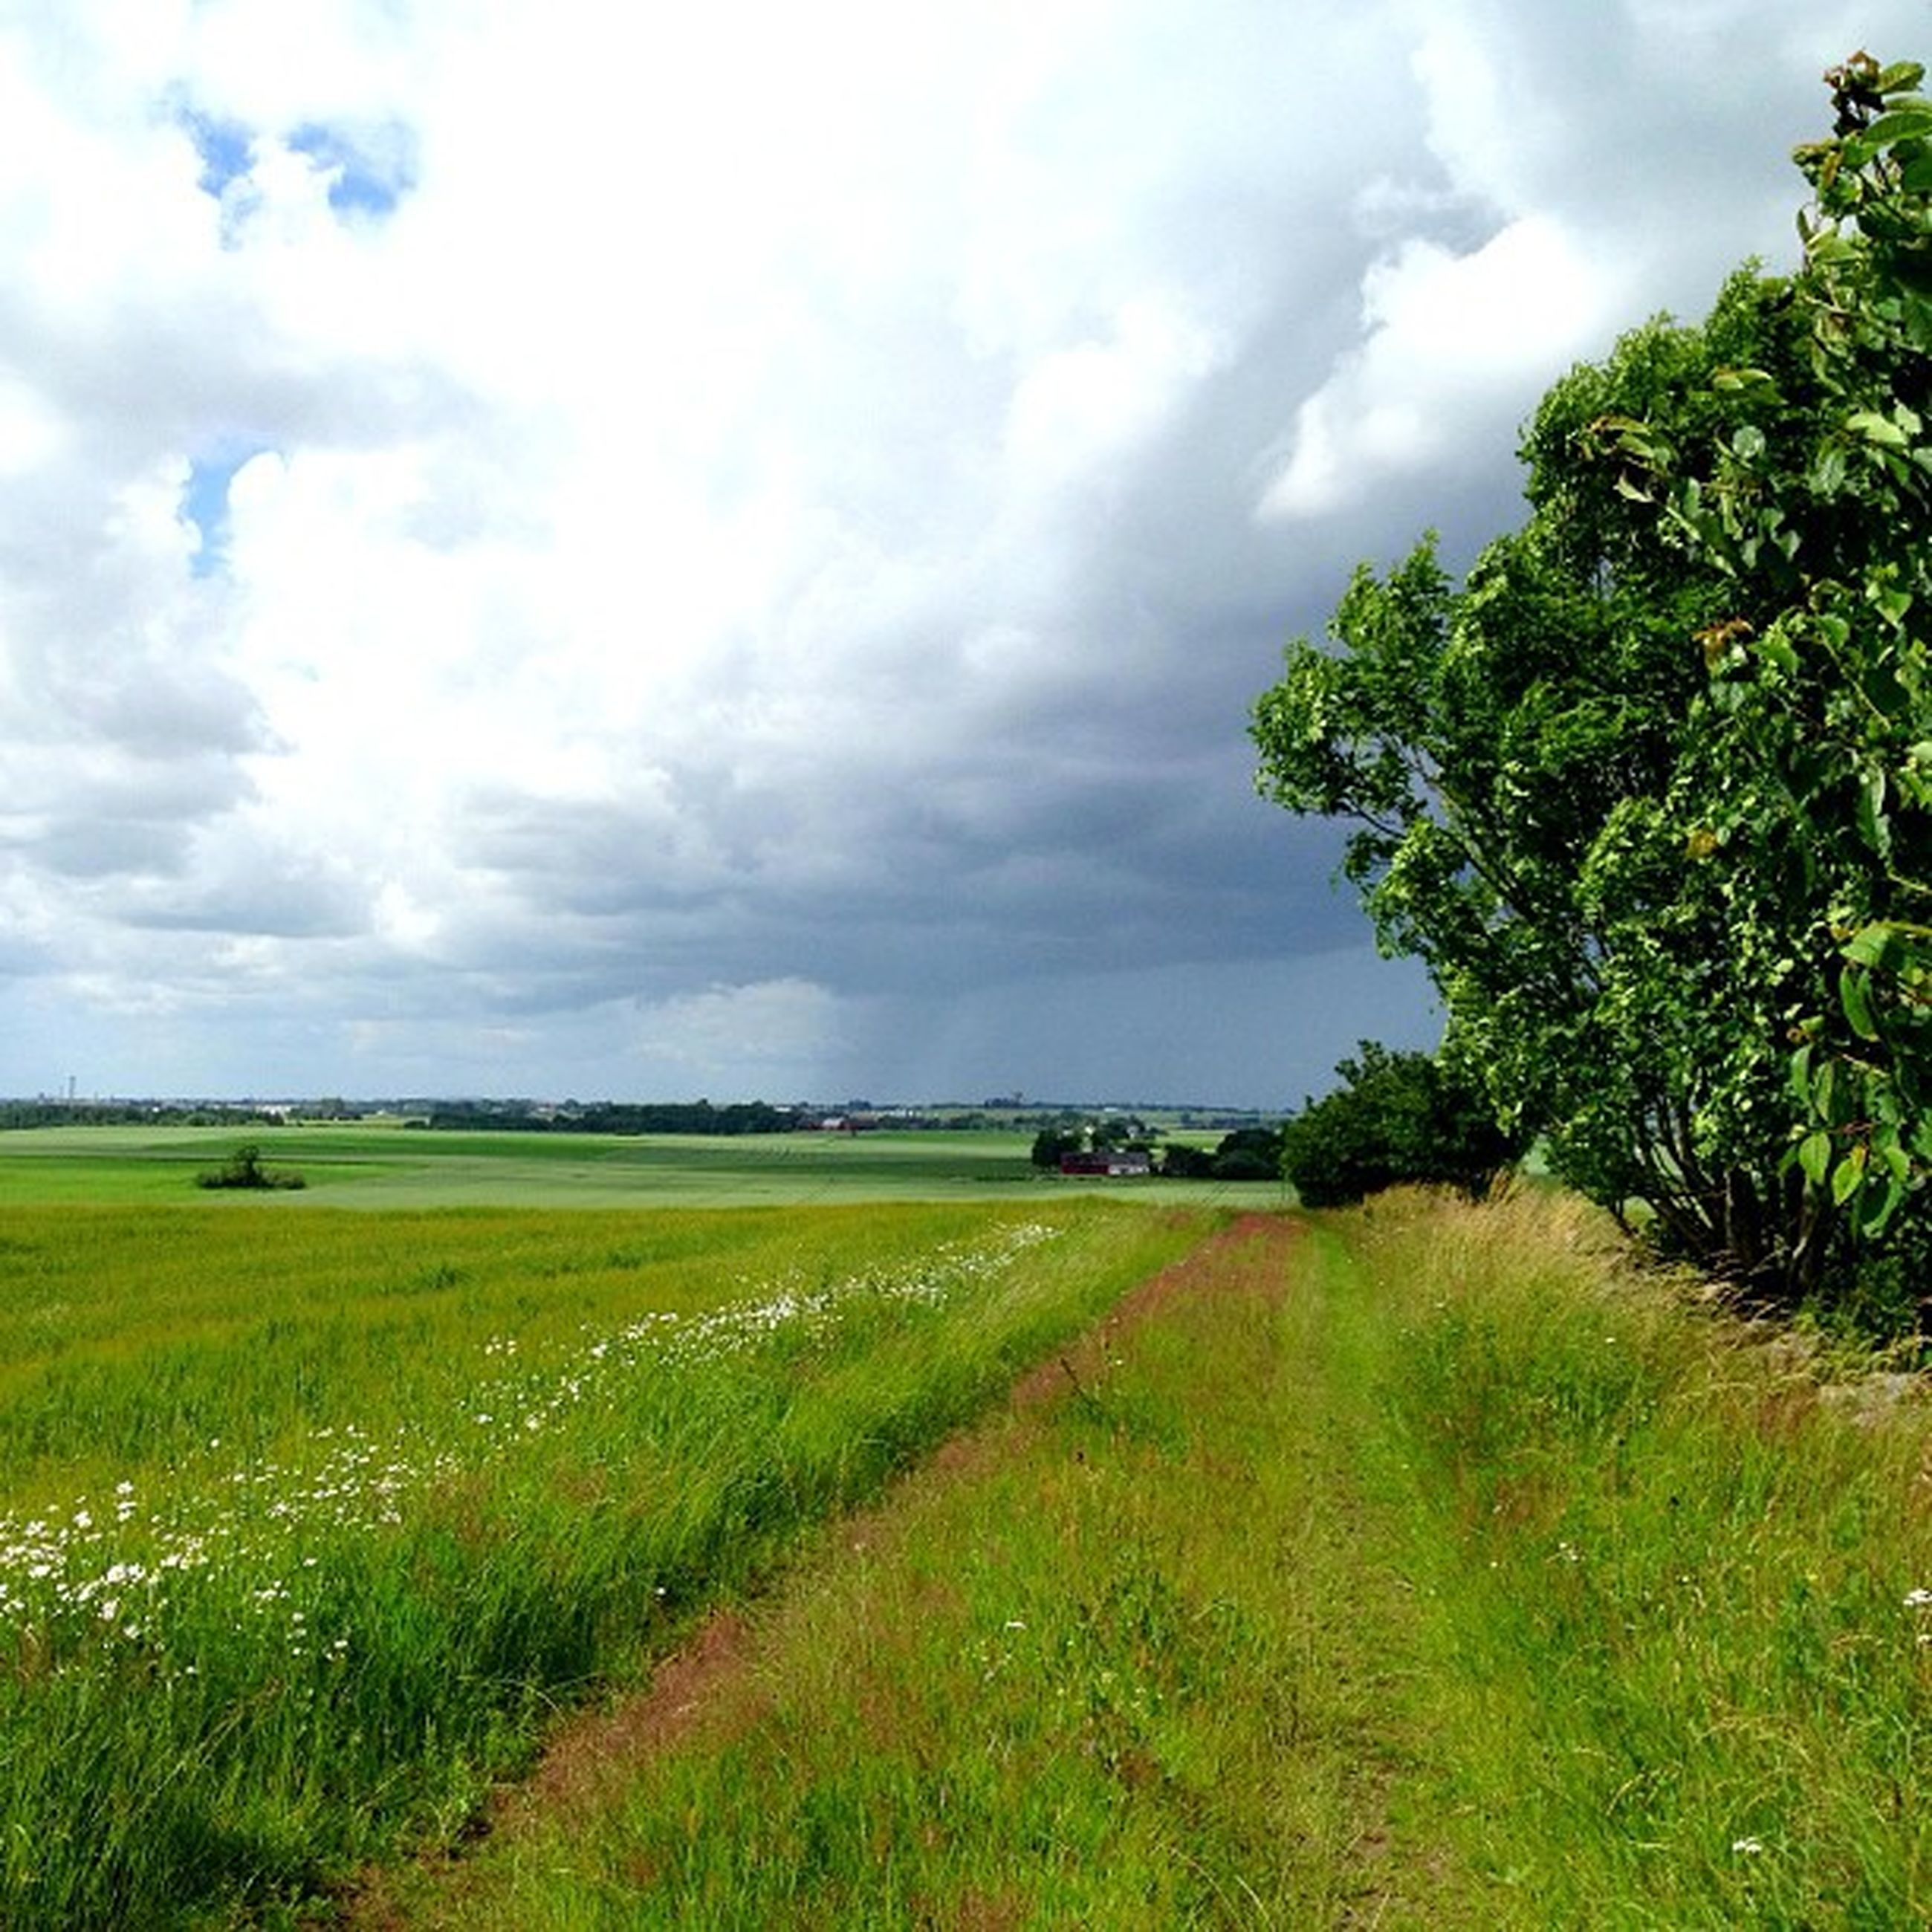 sky, grass, field, landscape, tranquil scene, tranquility, cloud - sky, scenics, cloudy, green color, beauty in nature, cloud, growth, nature, rural scene, agriculture, grassy, tree, farm, idyllic